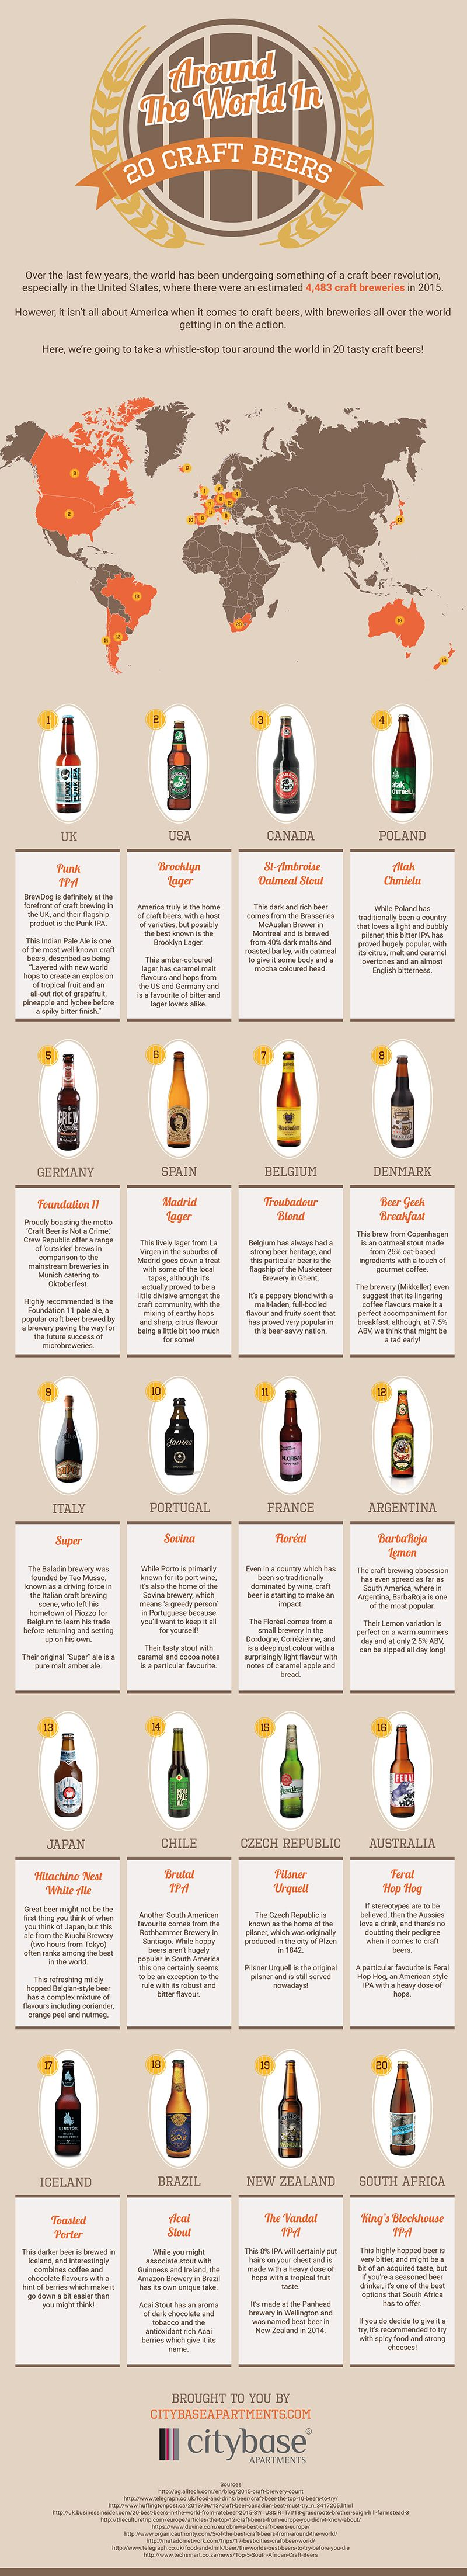 Around The World in 20 Craft Beers